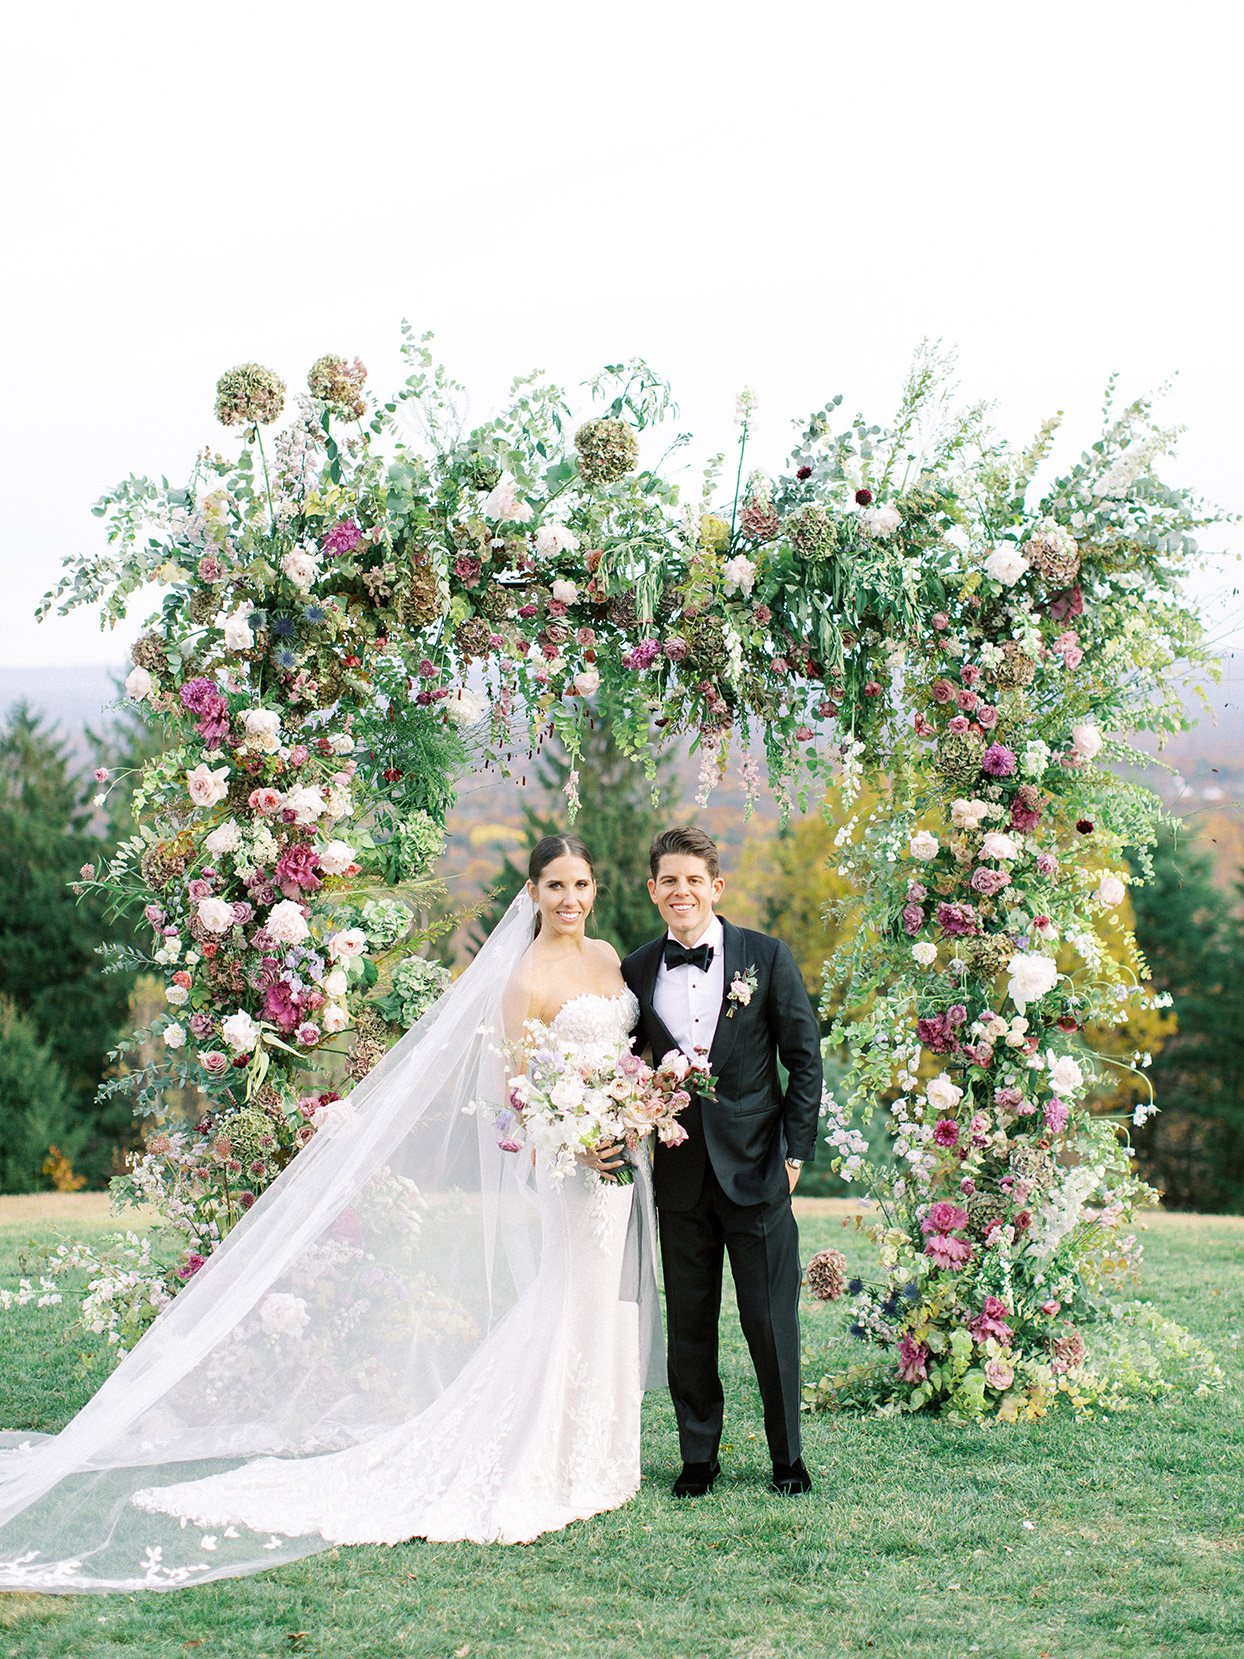 elizabeth nicholas wedding couple portrait in front of floral arch